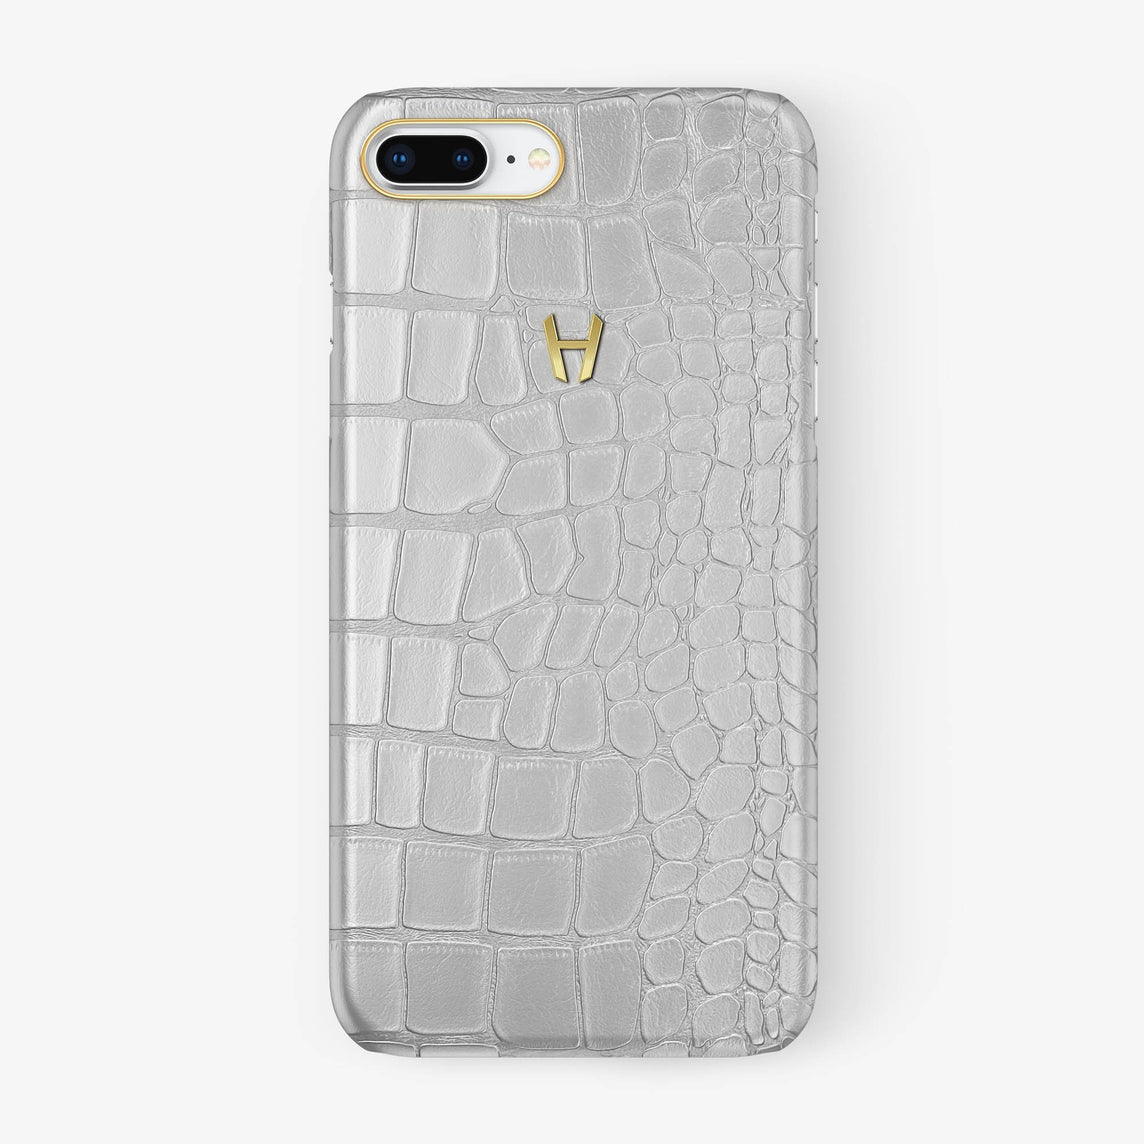 Alligator Case iPhone 7/8 Plus | White - Yellow Gold - Hadoro